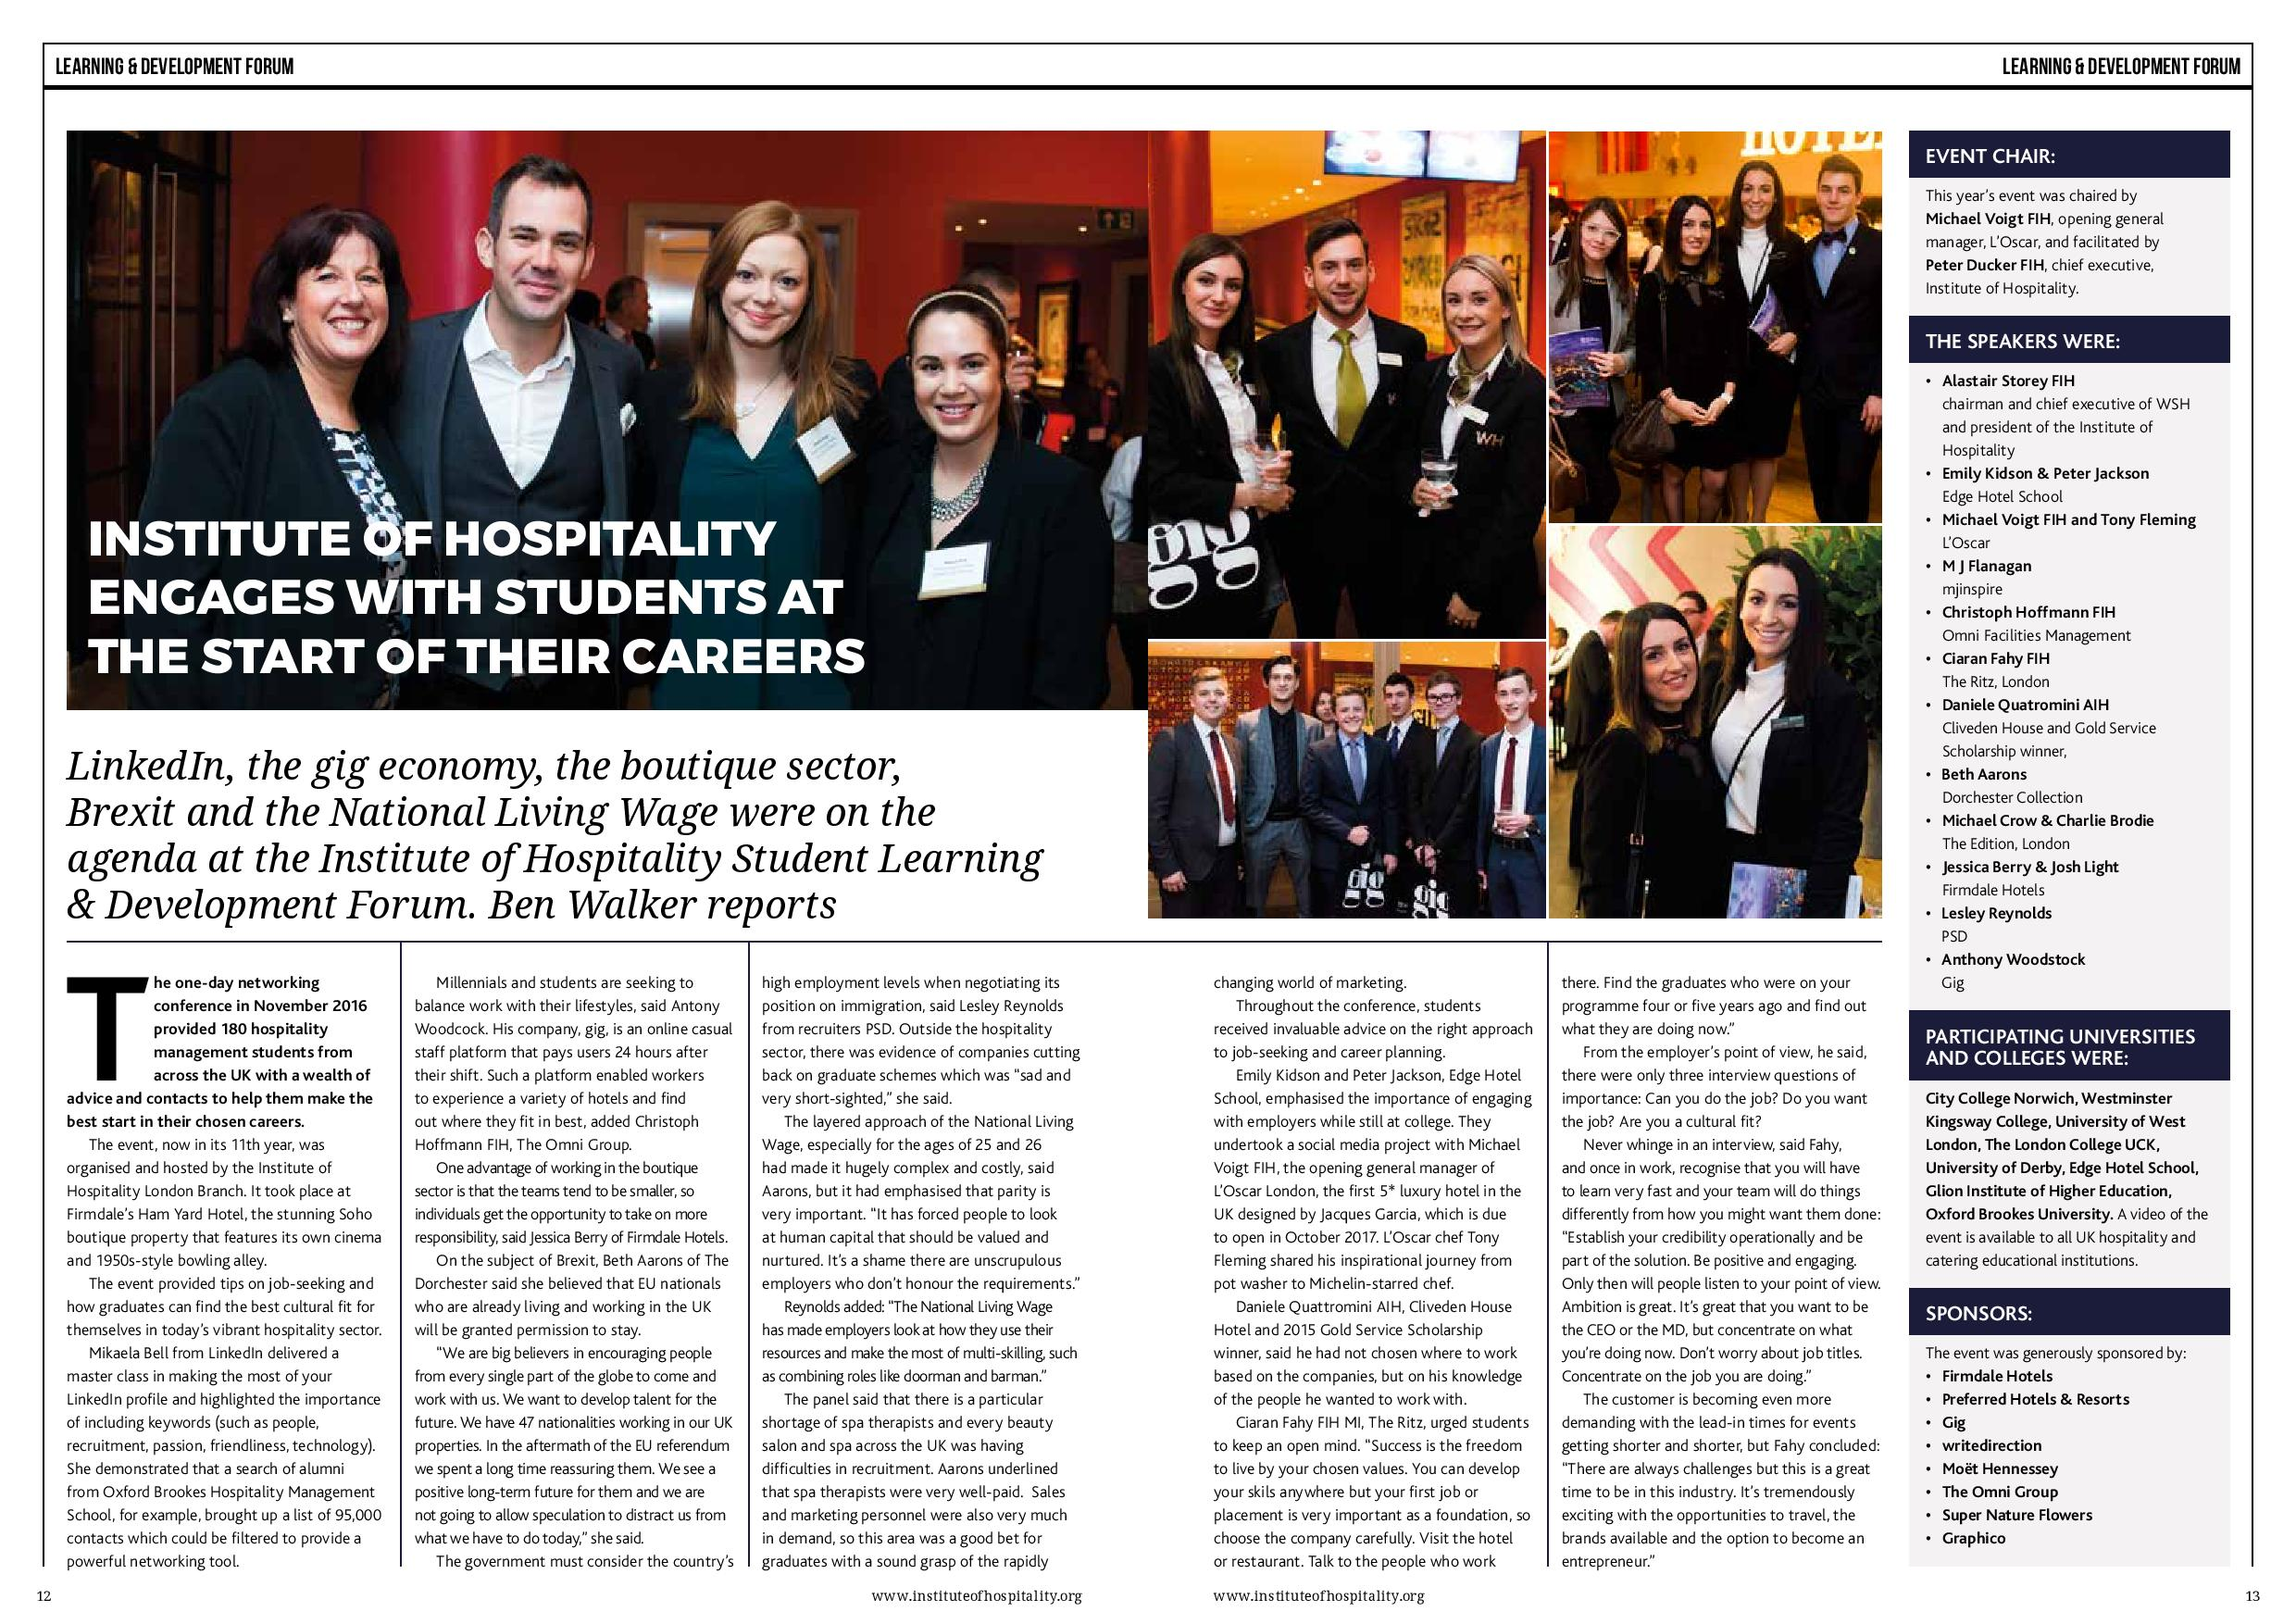 Institute of Hospitality engages with Student at the start of their careers